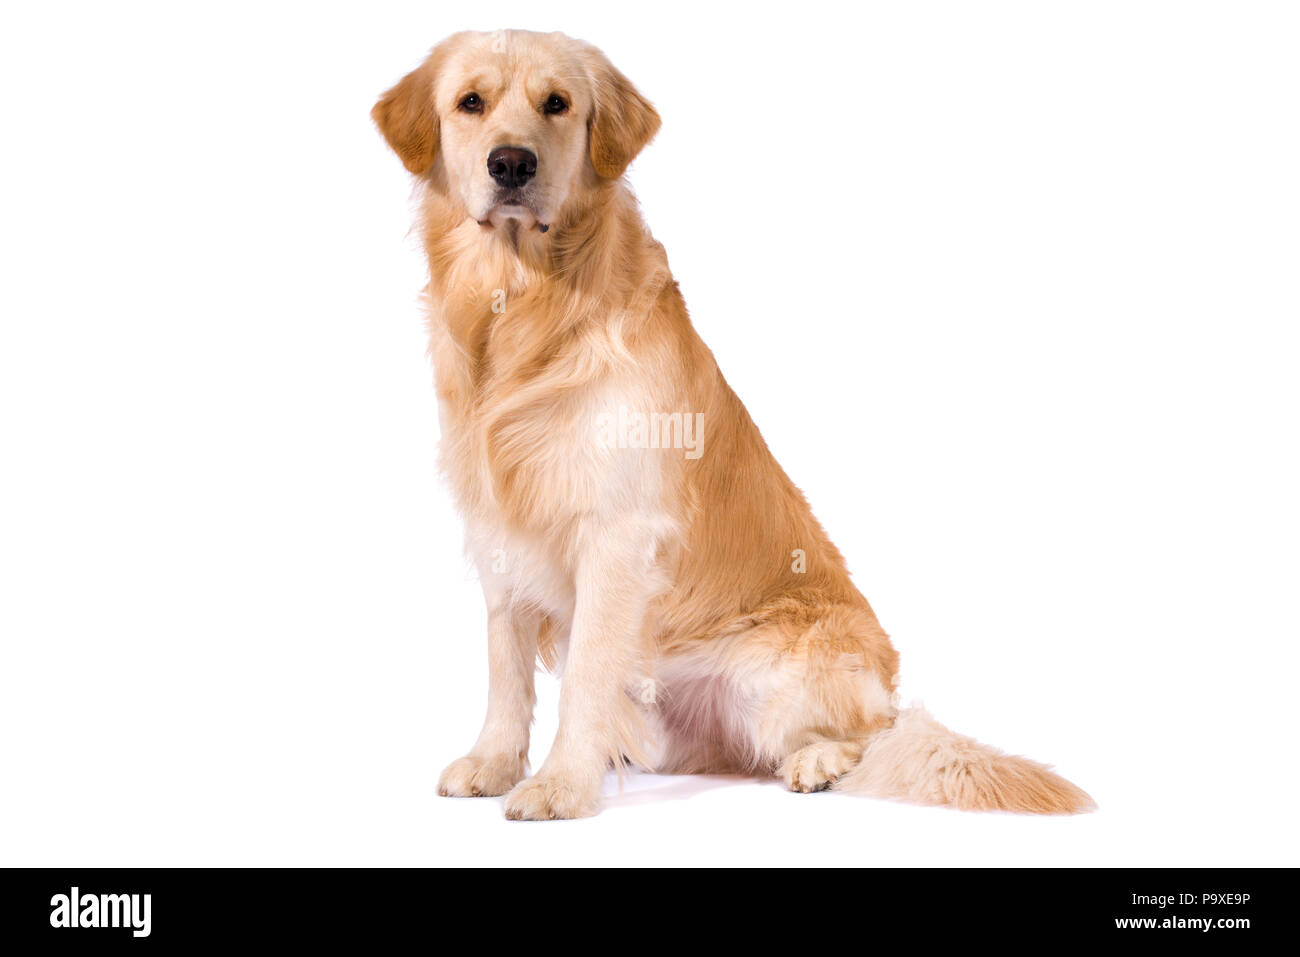 Purebred Golden Retriever isolated sitting looking at camera Stock Photo